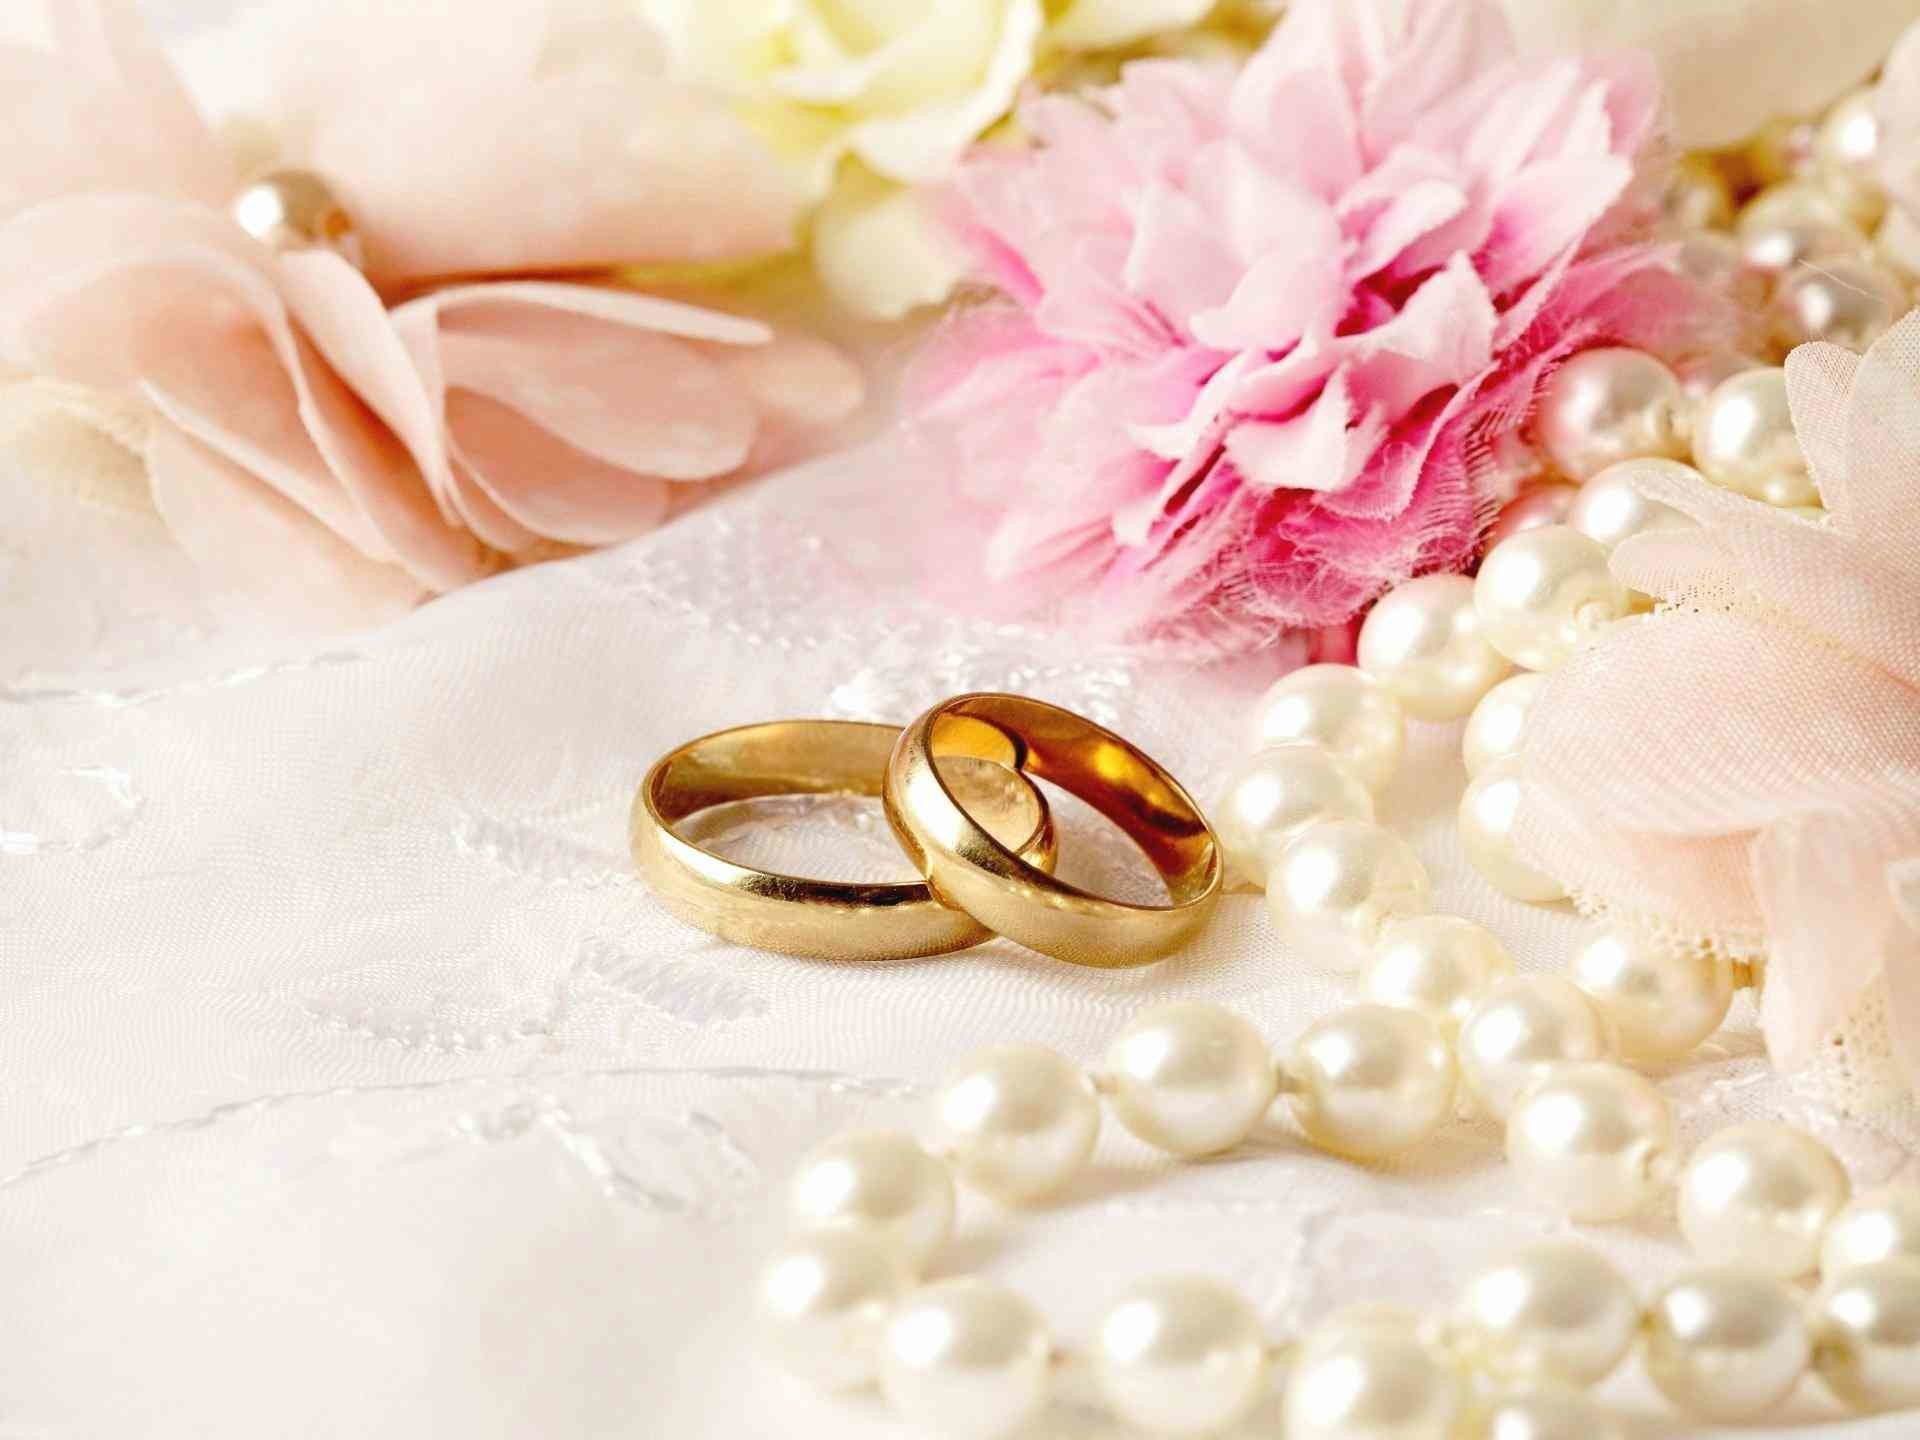 Res: 1920x1440, Download by size:Handphone Tablet Desktop (Original Size). Back To 50 Fresh Flower  Wedding Rings Pics